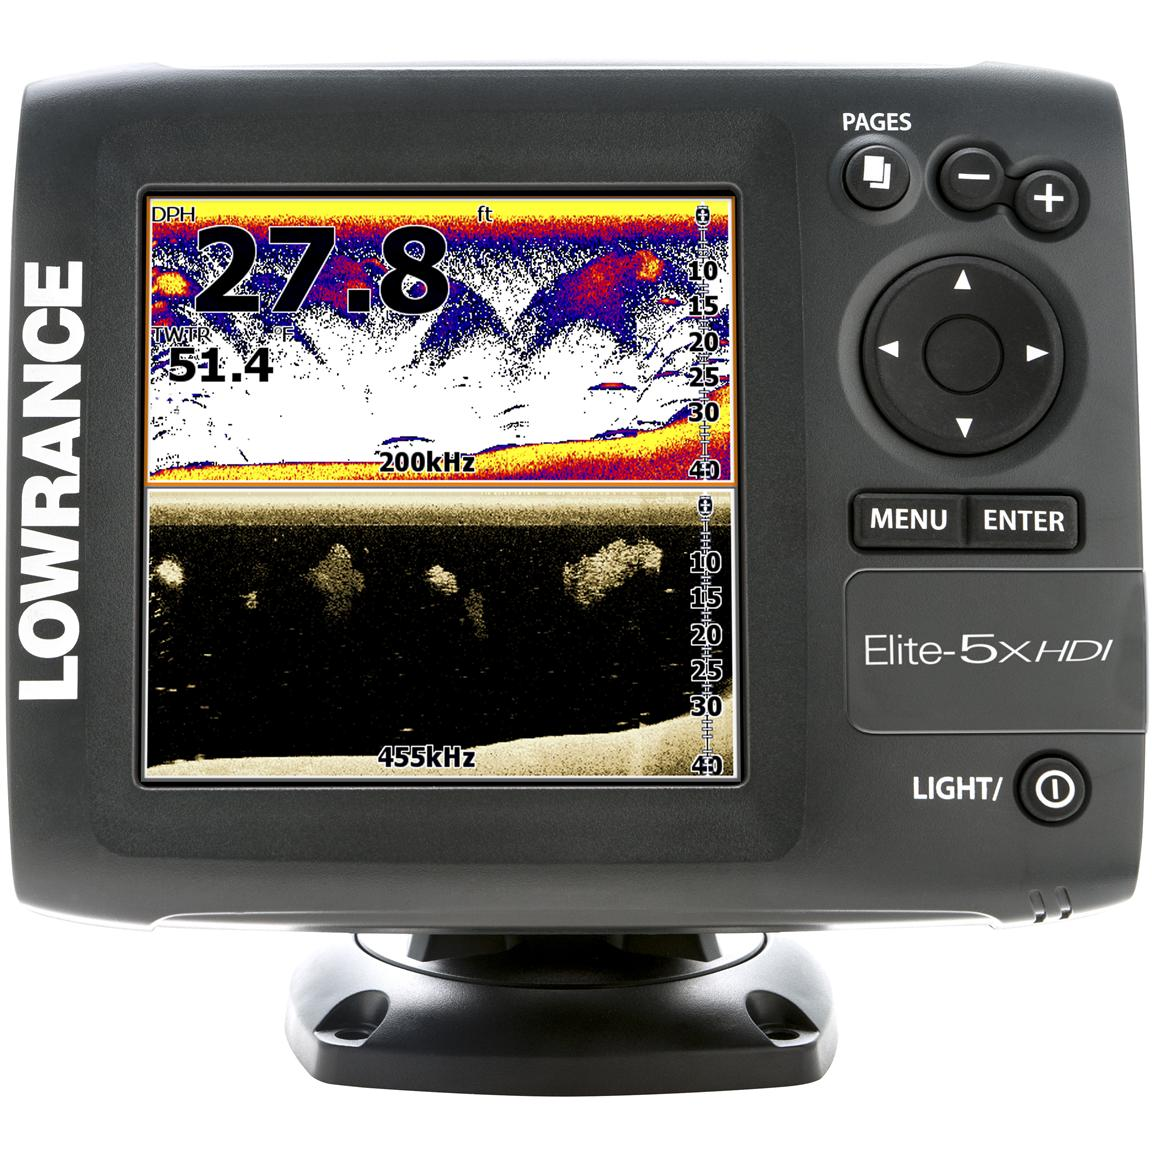 Lowrance® Elite-5x HDI Fishfinder with 50/200kHz and 455/800kHz Transducers